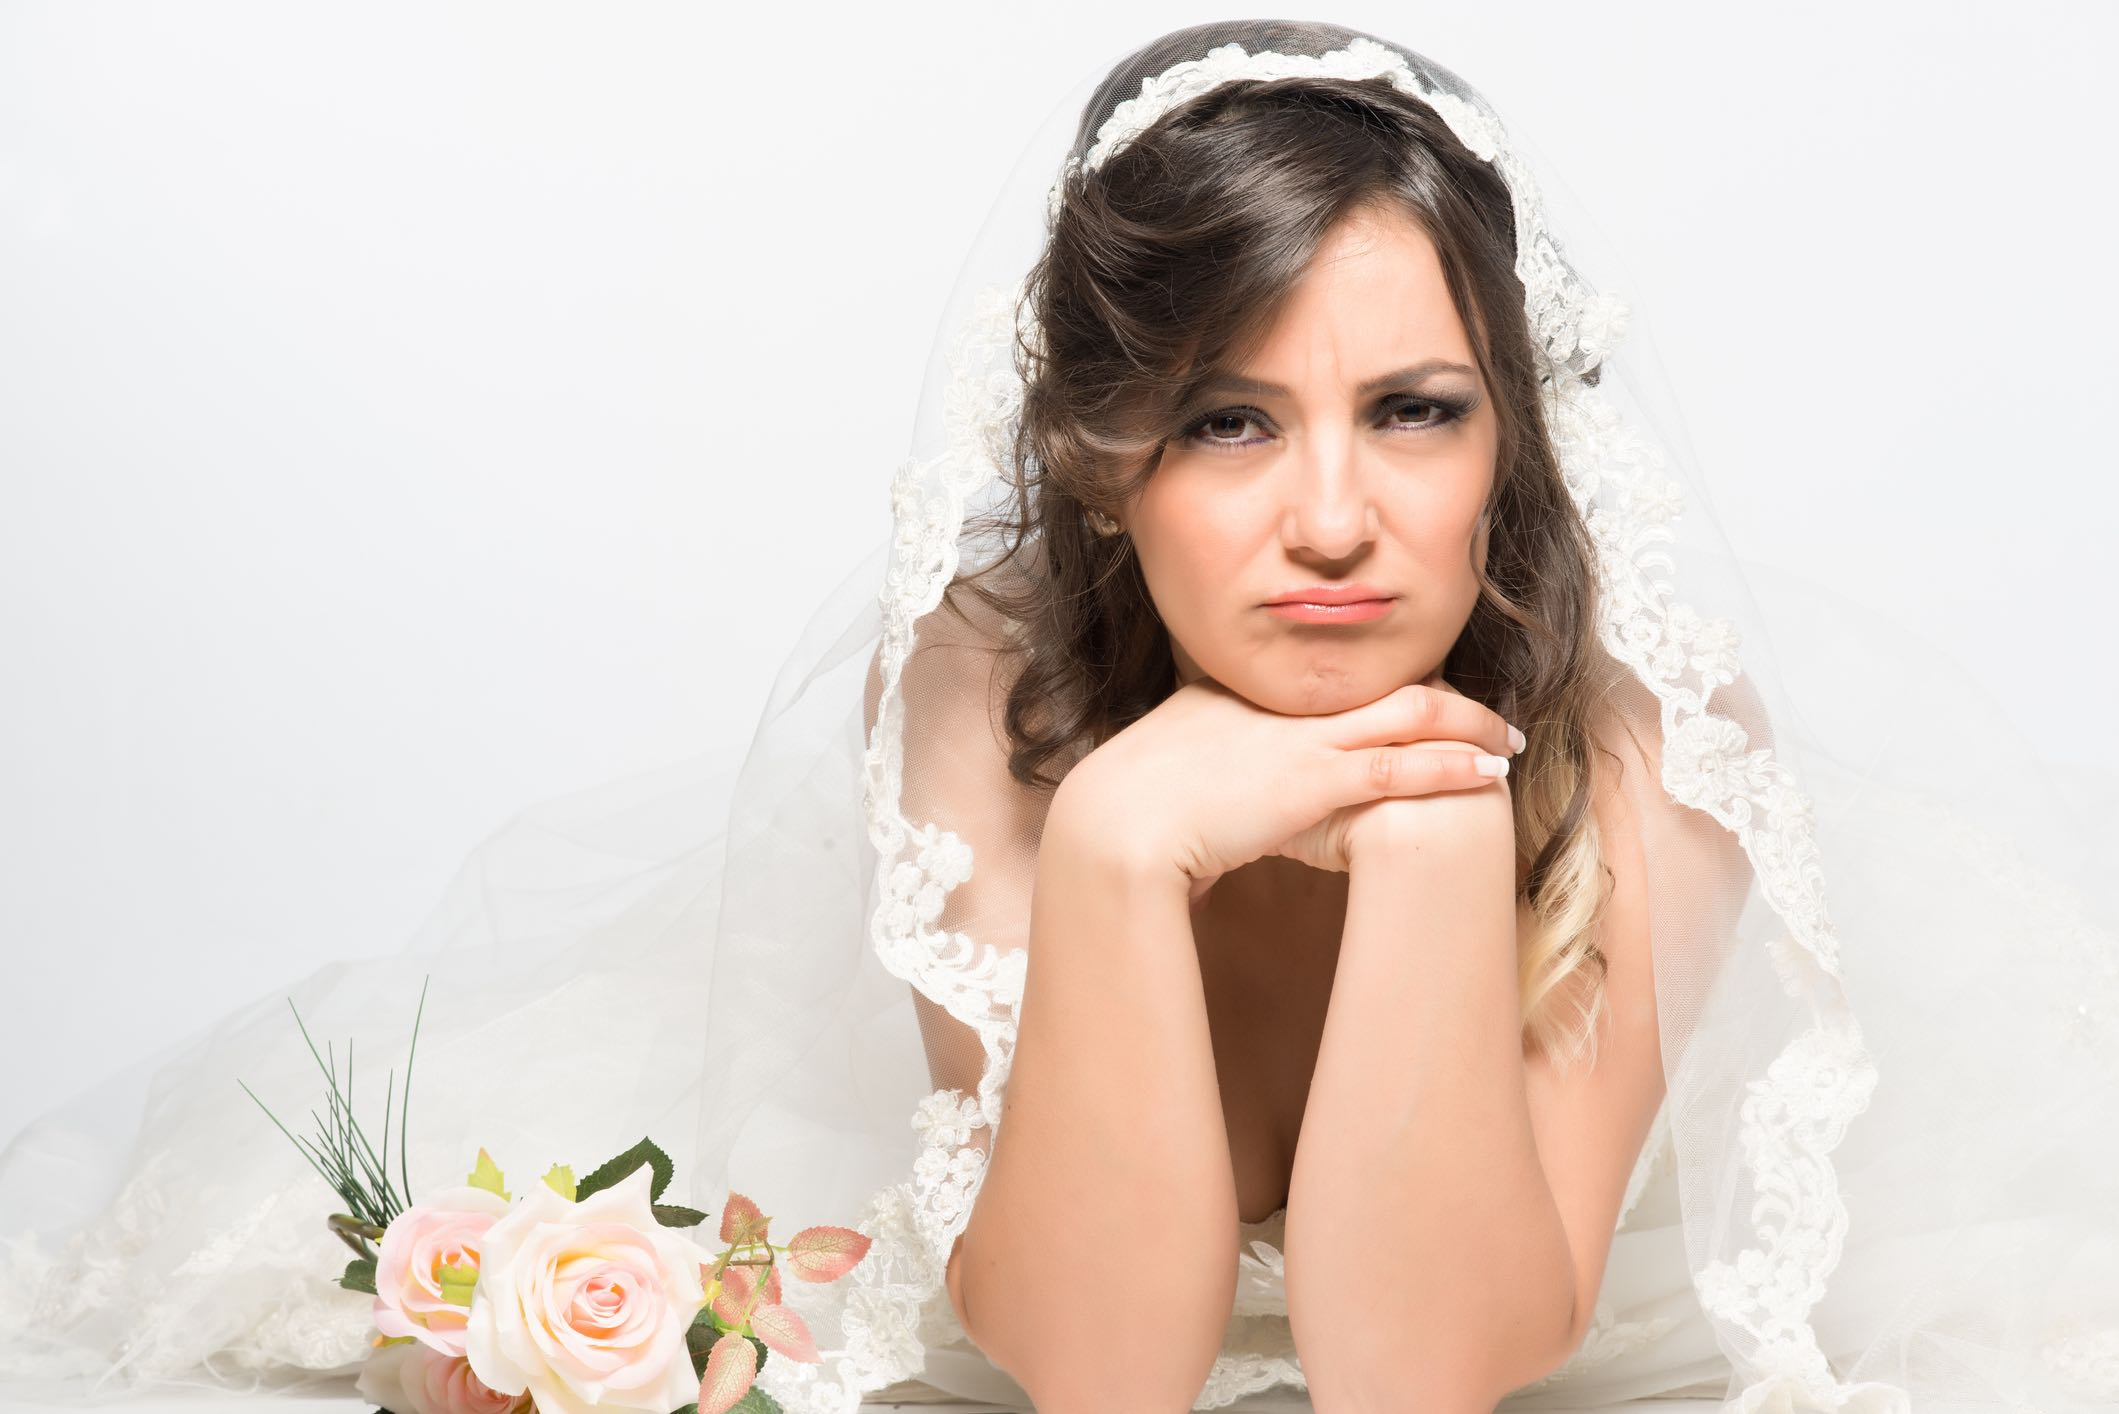 I what type should marry woman of Type Of